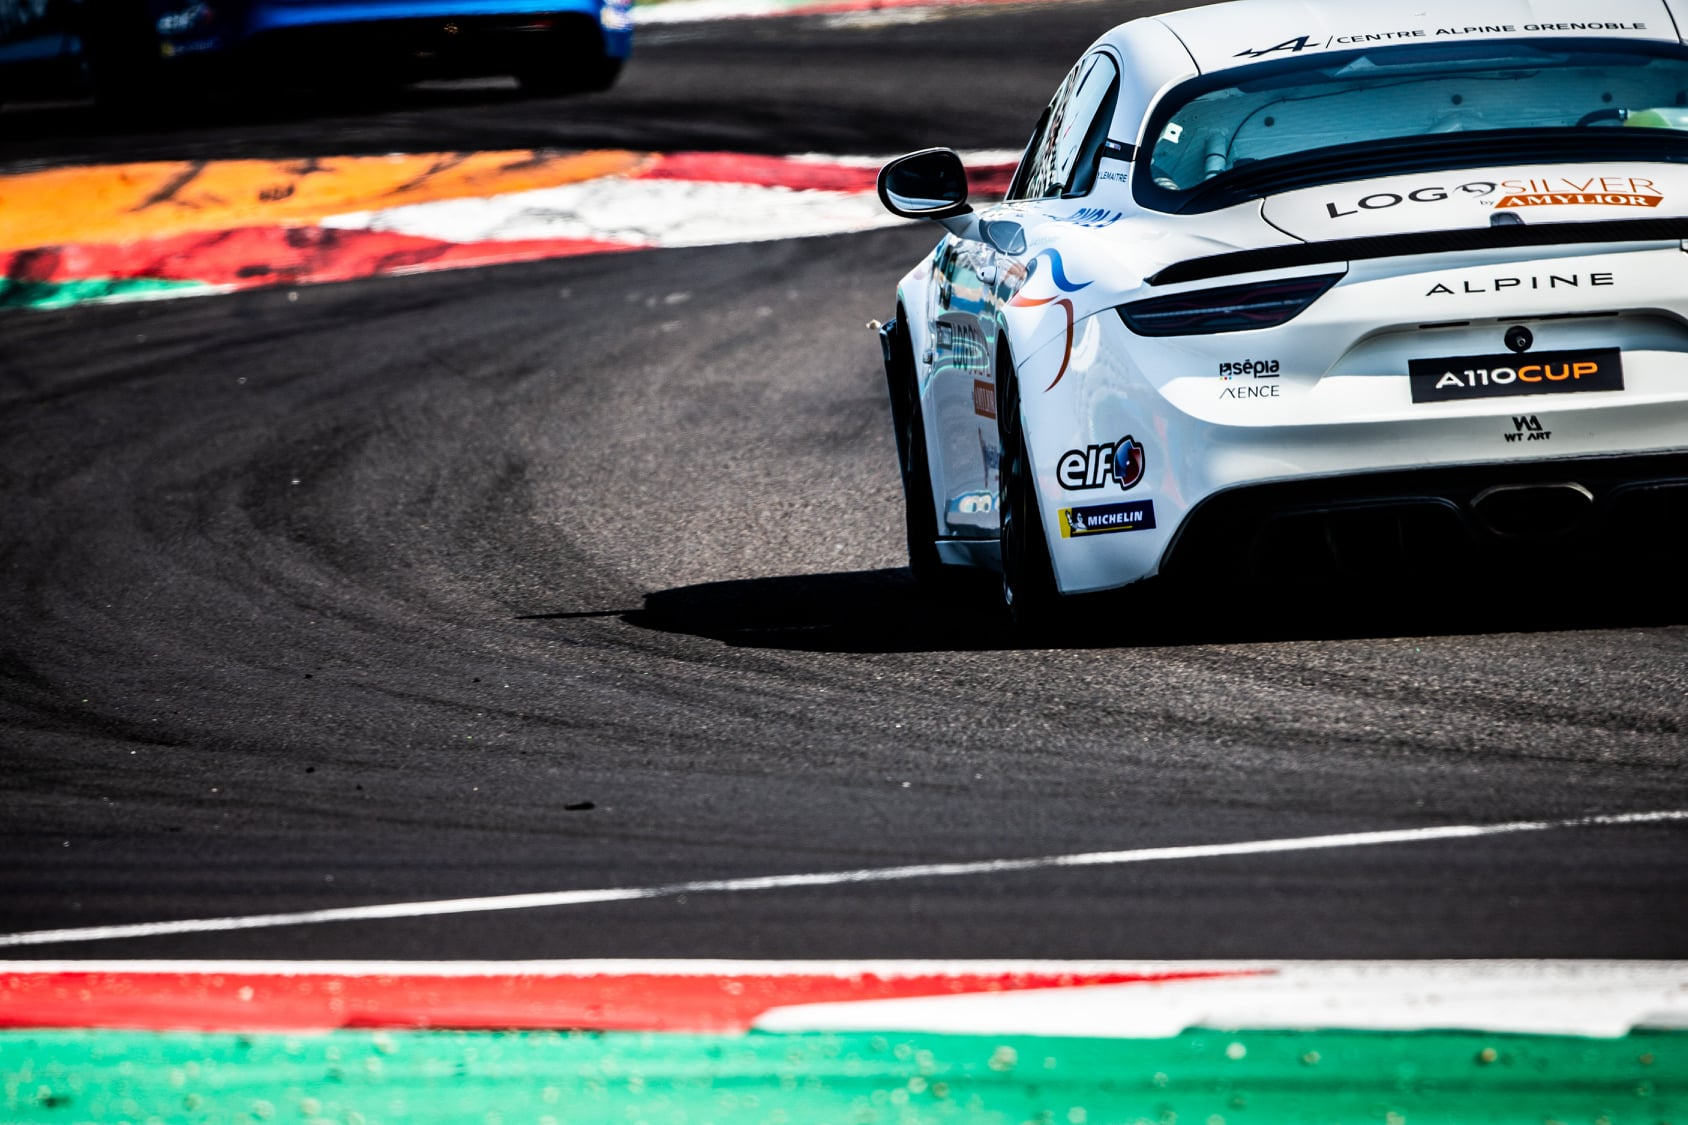 Alpine Elf Europa Cup 2020 Magny Cours A110 Cup 41 | Alpine Elf Europa Cup 2020: Jean-Baptiste Mela triomphe à Magny-Cours